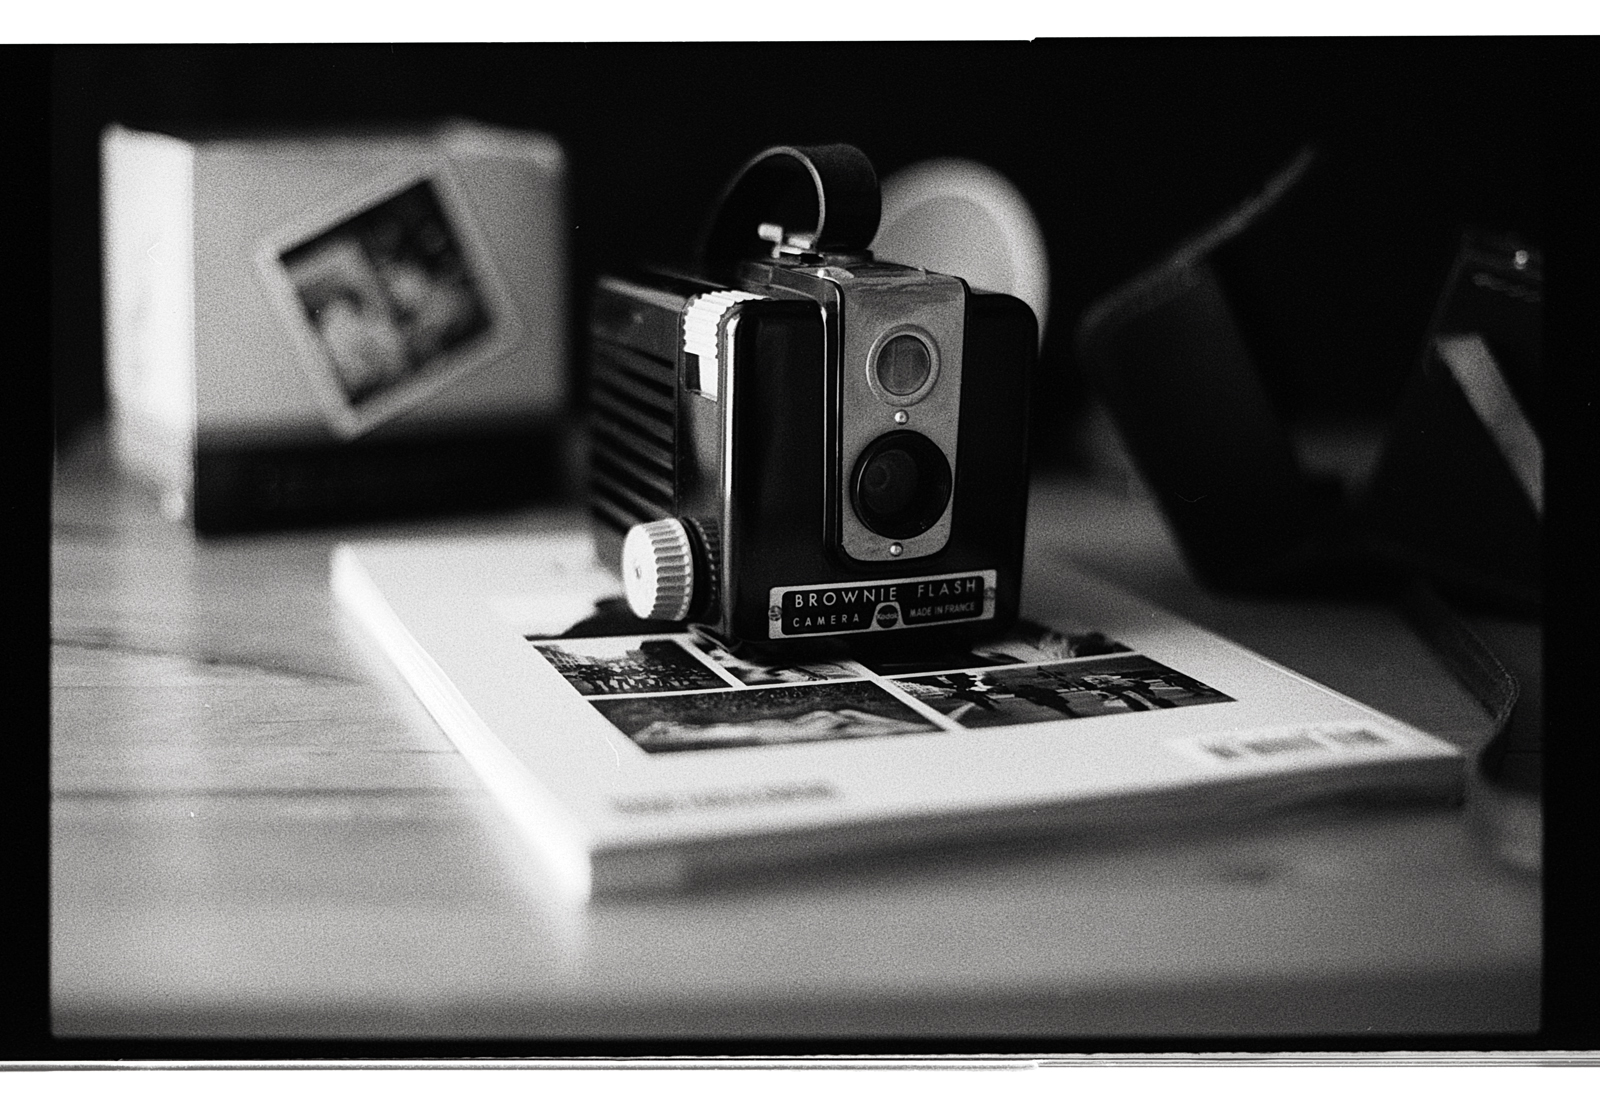 Brownie Flash pellicule Ilford FP4